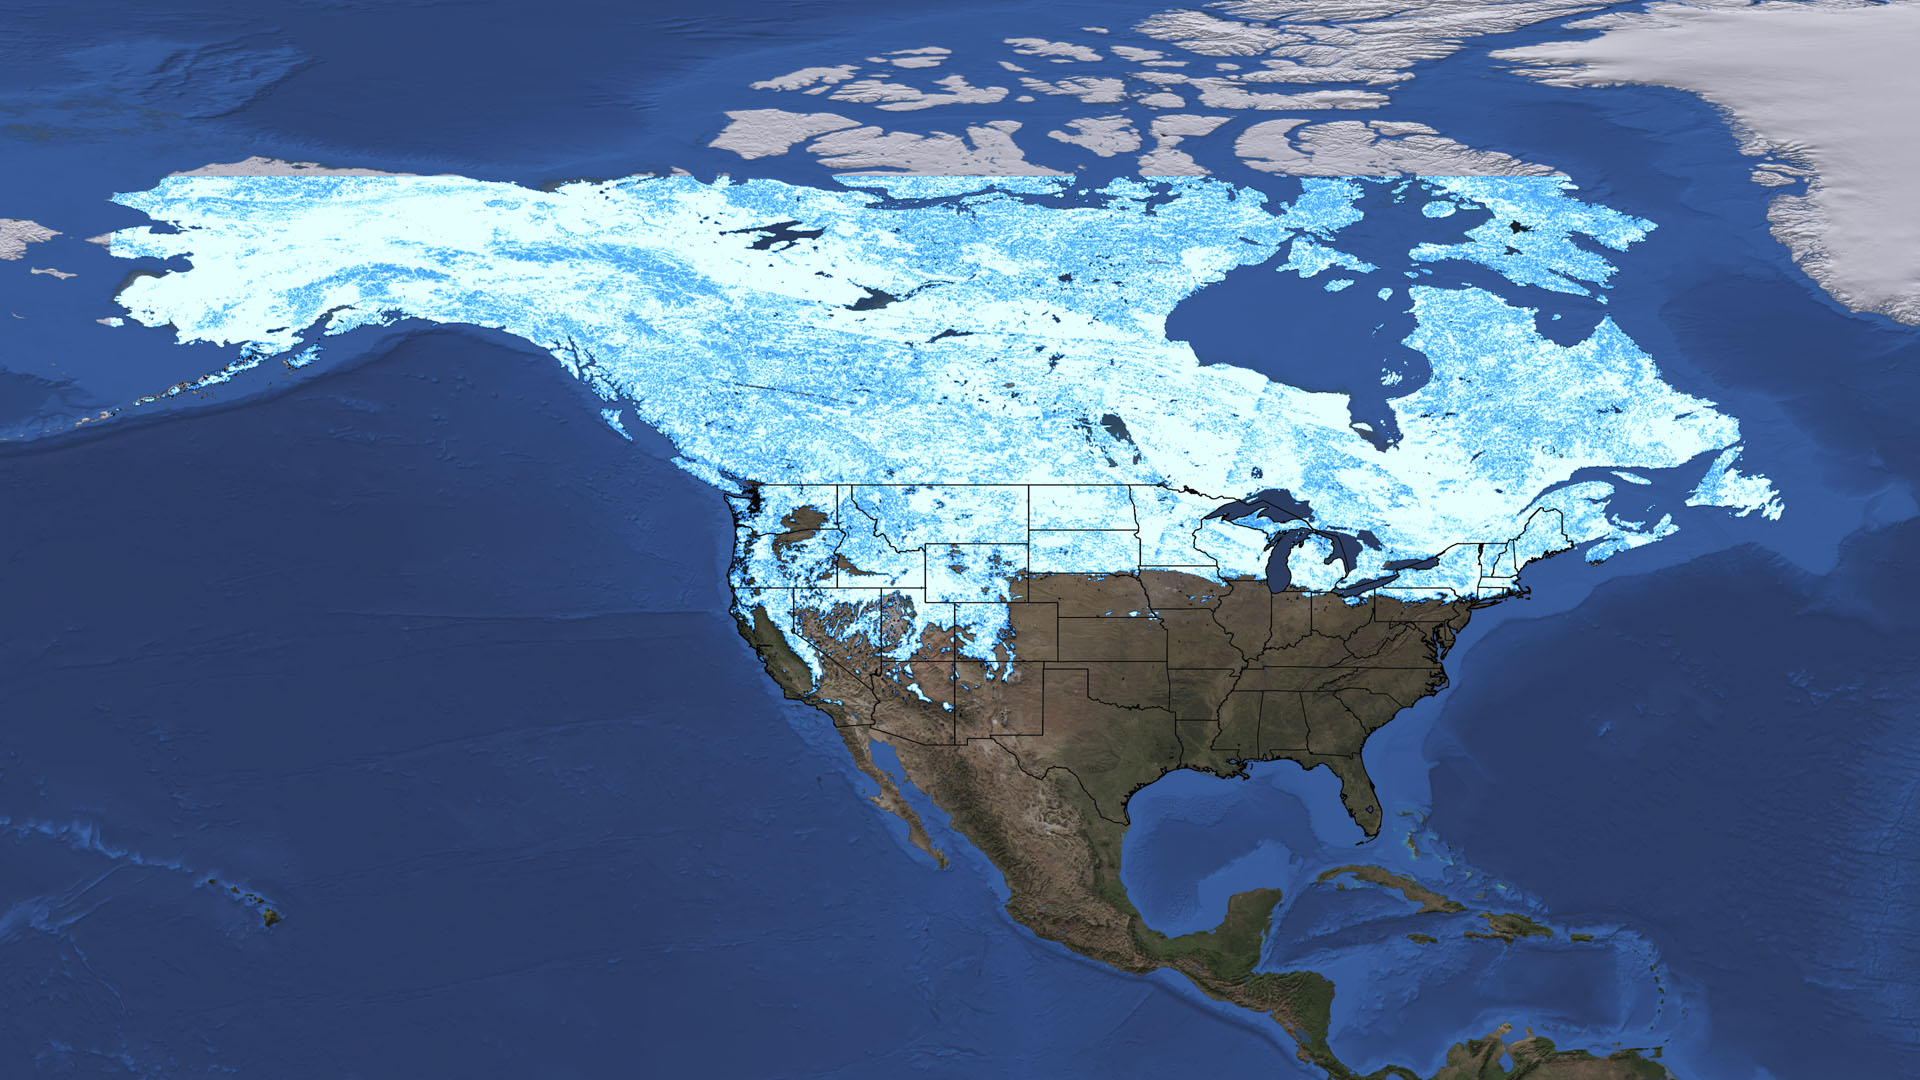 NASA Viz: Winter, Interrupted